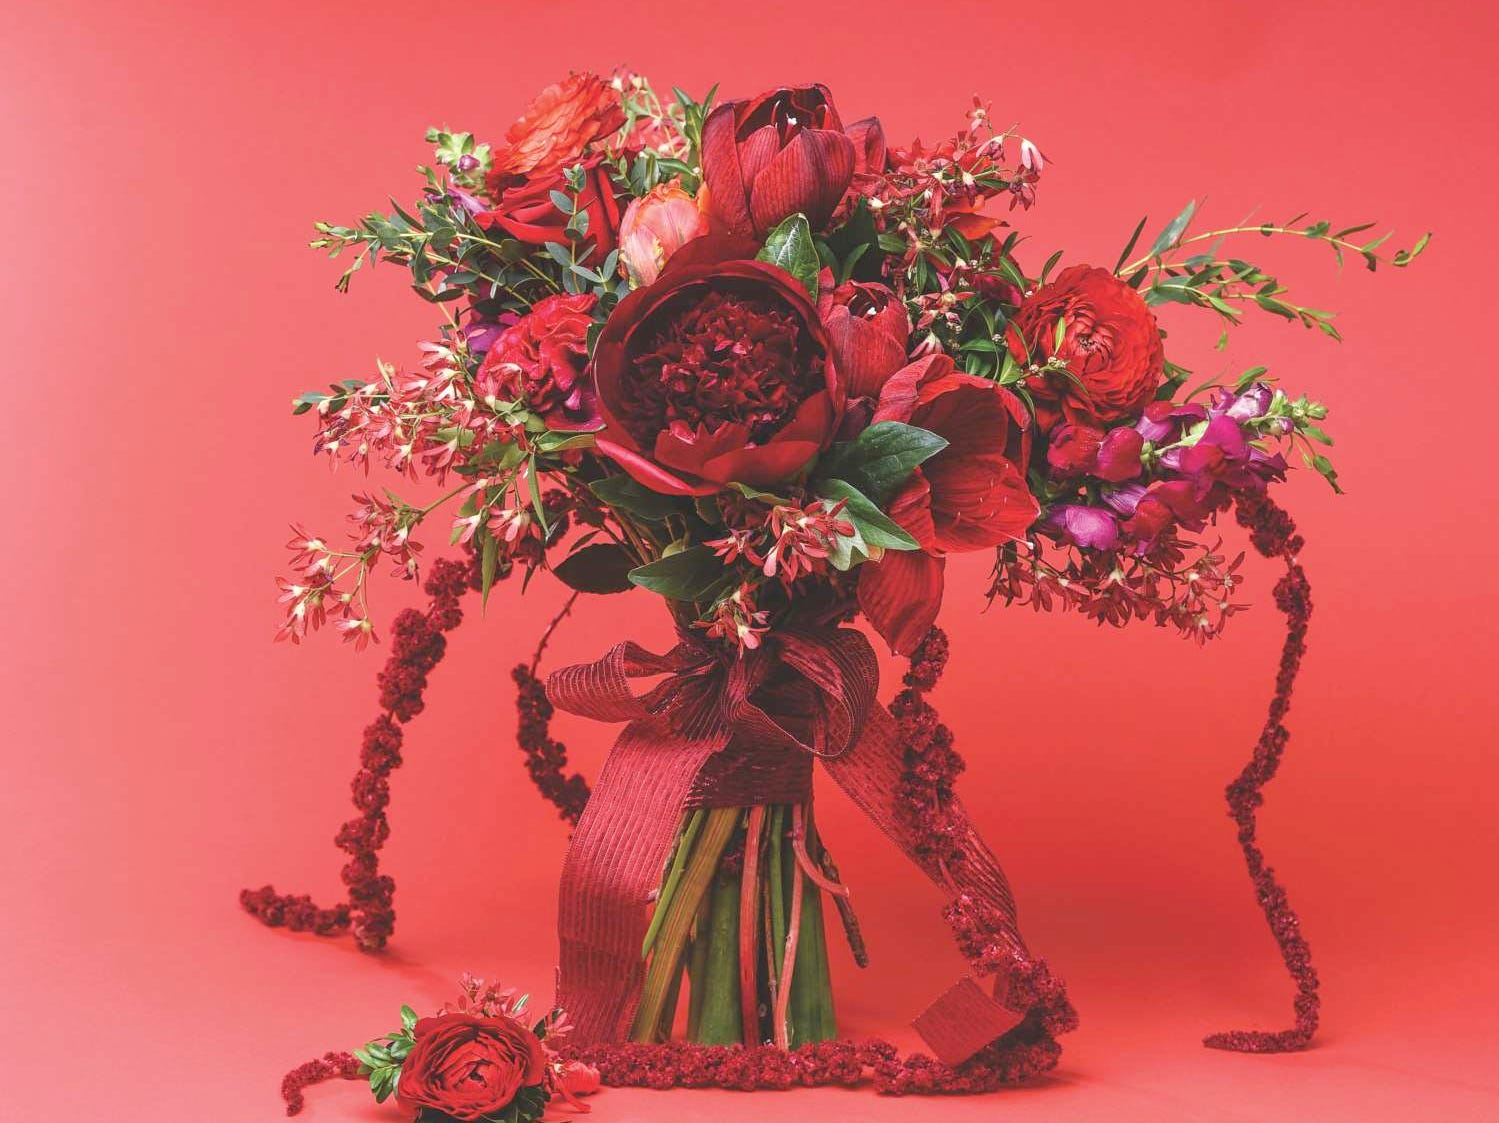 Beers Flower Shop — Flowers from (201) Bride feature